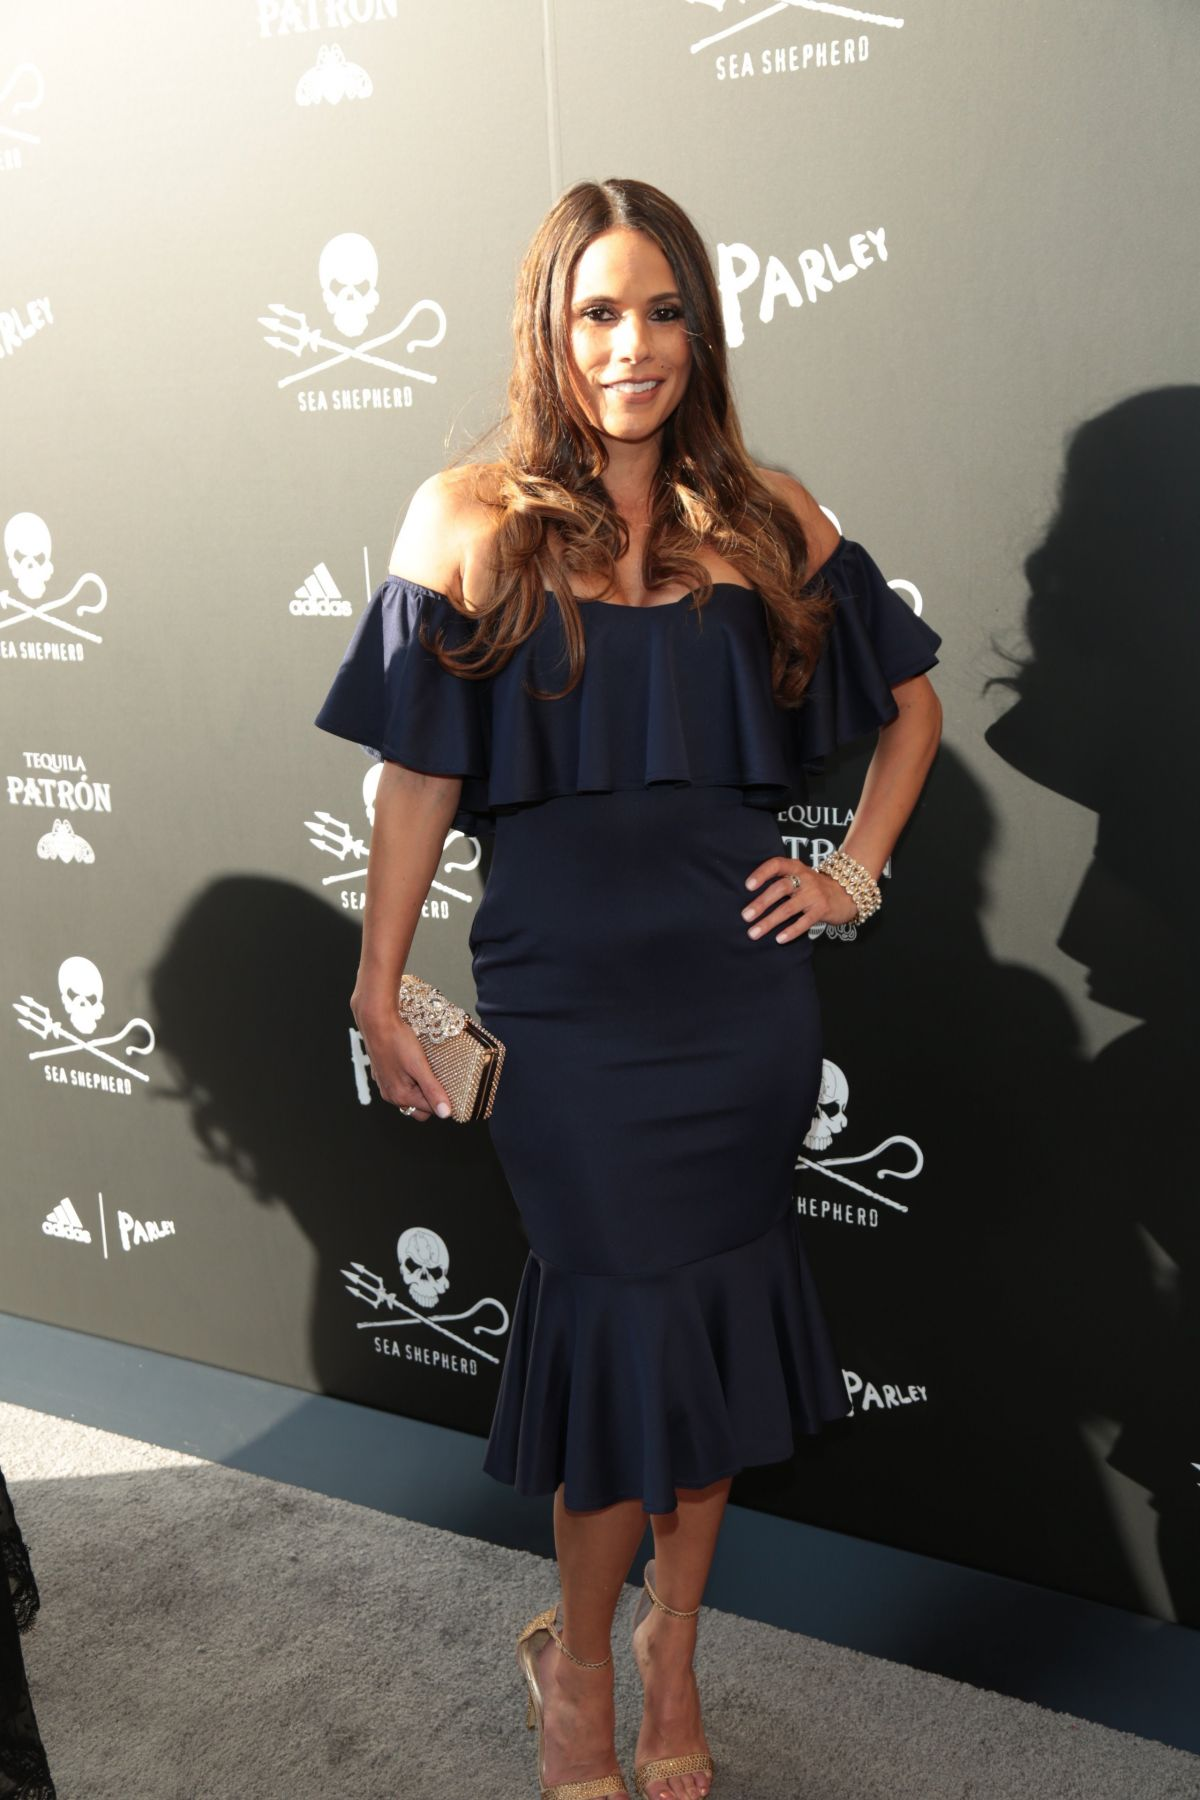 BONNIE JILL LAFLIN at Shepherd Conservation Society's 40th Anniversary Gala in Los Angeles 06/10/2017